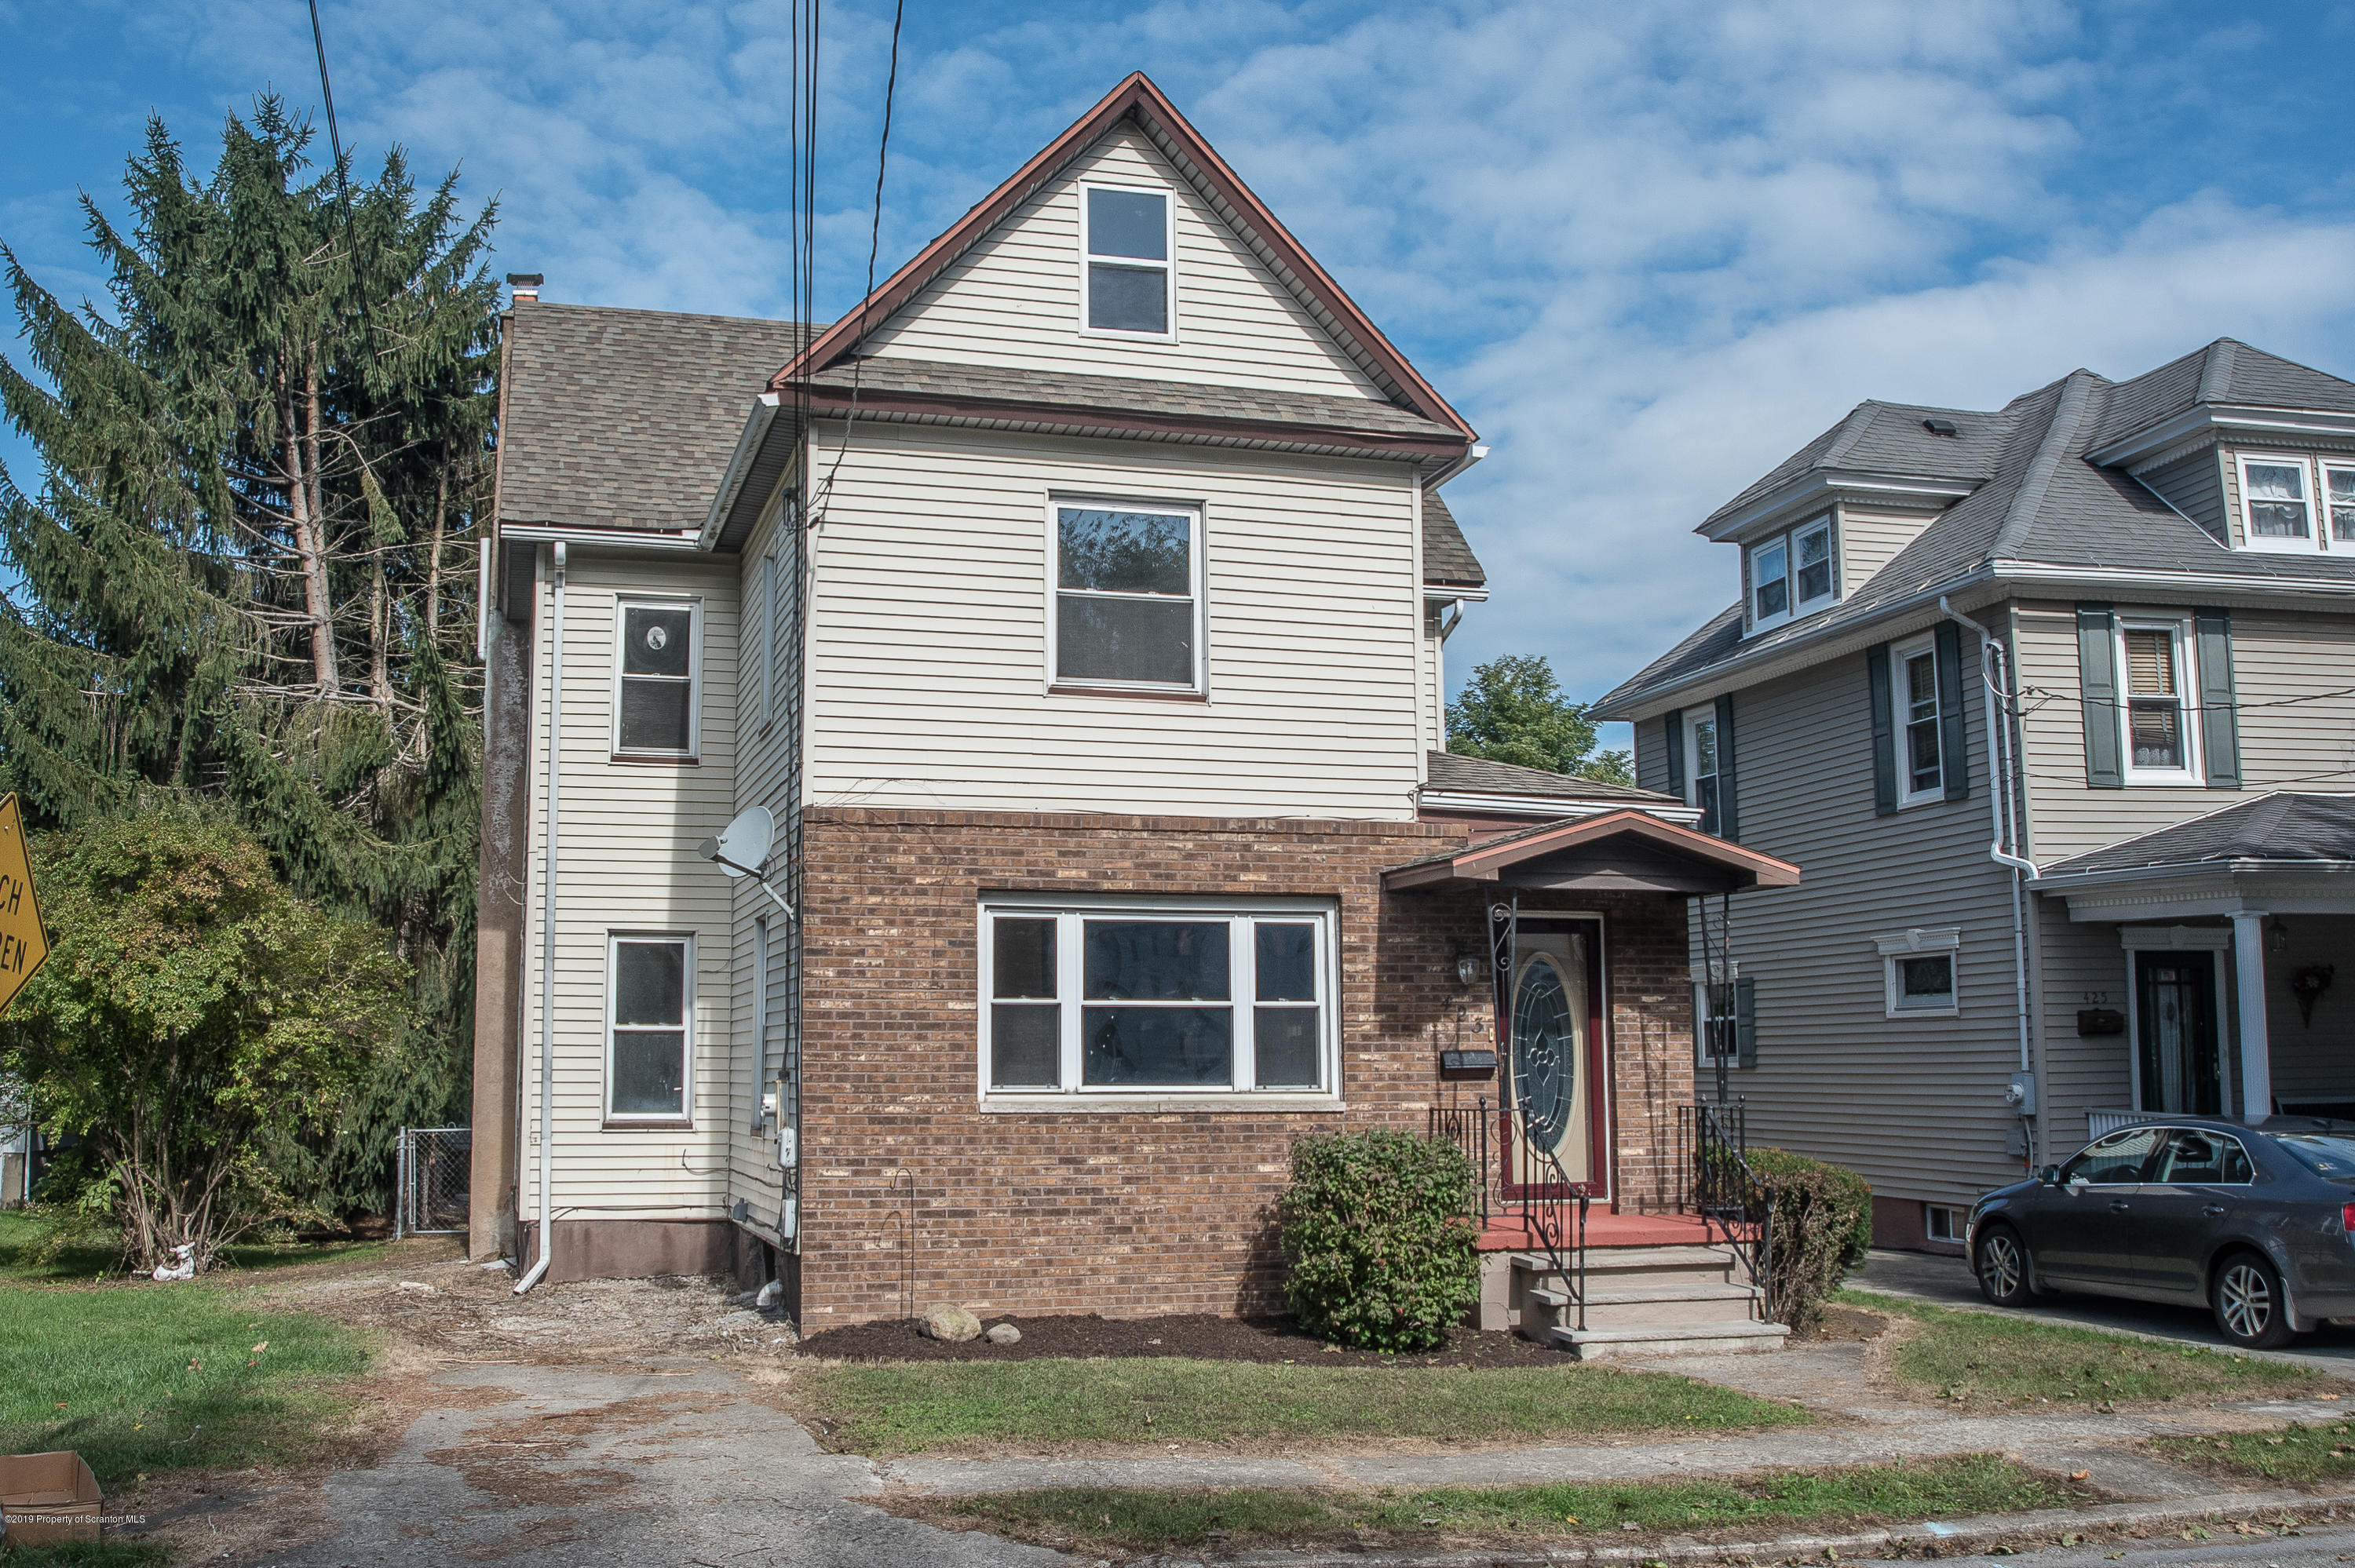 423 Hudson St, Moosic, Pennsylvania 18507, 4 Bedrooms Bedrooms, 9 Rooms Rooms,2 BathroomsBathrooms,Single Family,For Sale,Hudson,19-4935